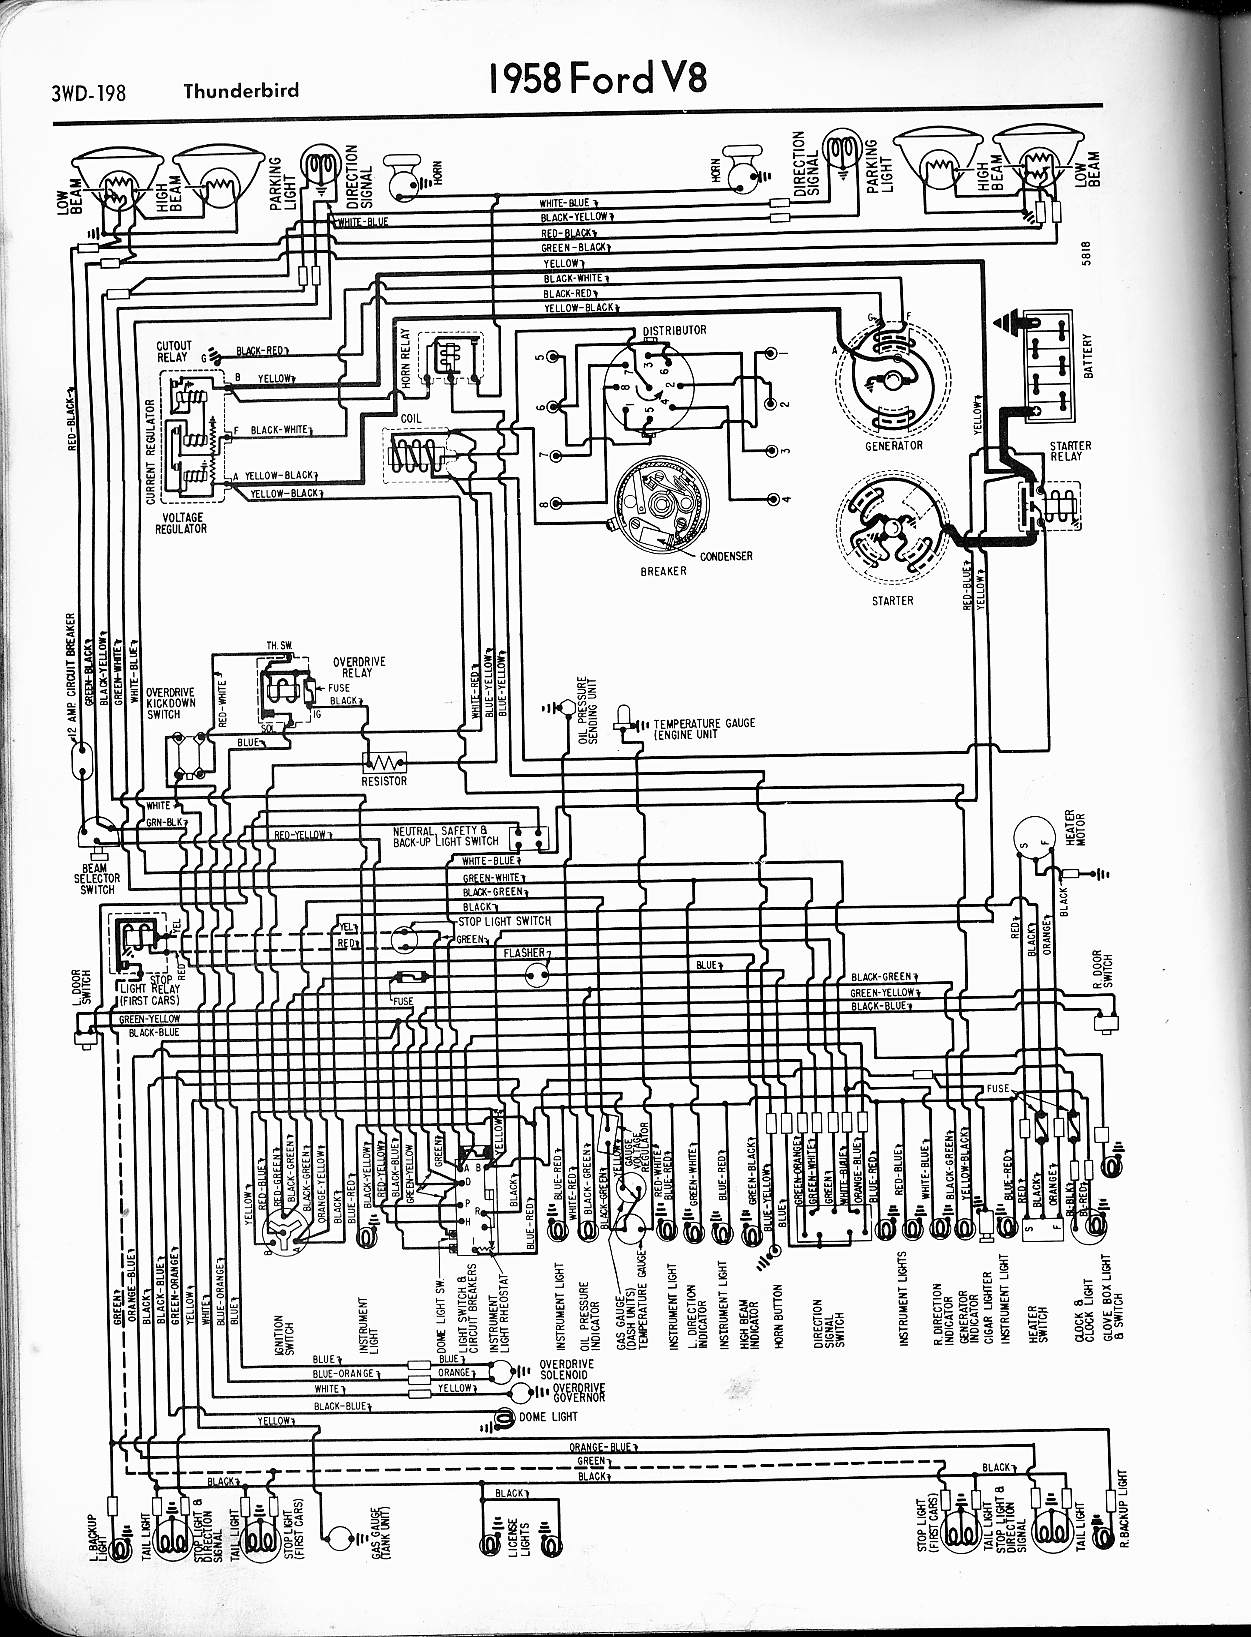 1958 Plymouth Wiring Diagram Reinvent Your 1953 Chevy Truck Schematics Online Rh Delvato Co 1954 Dodge